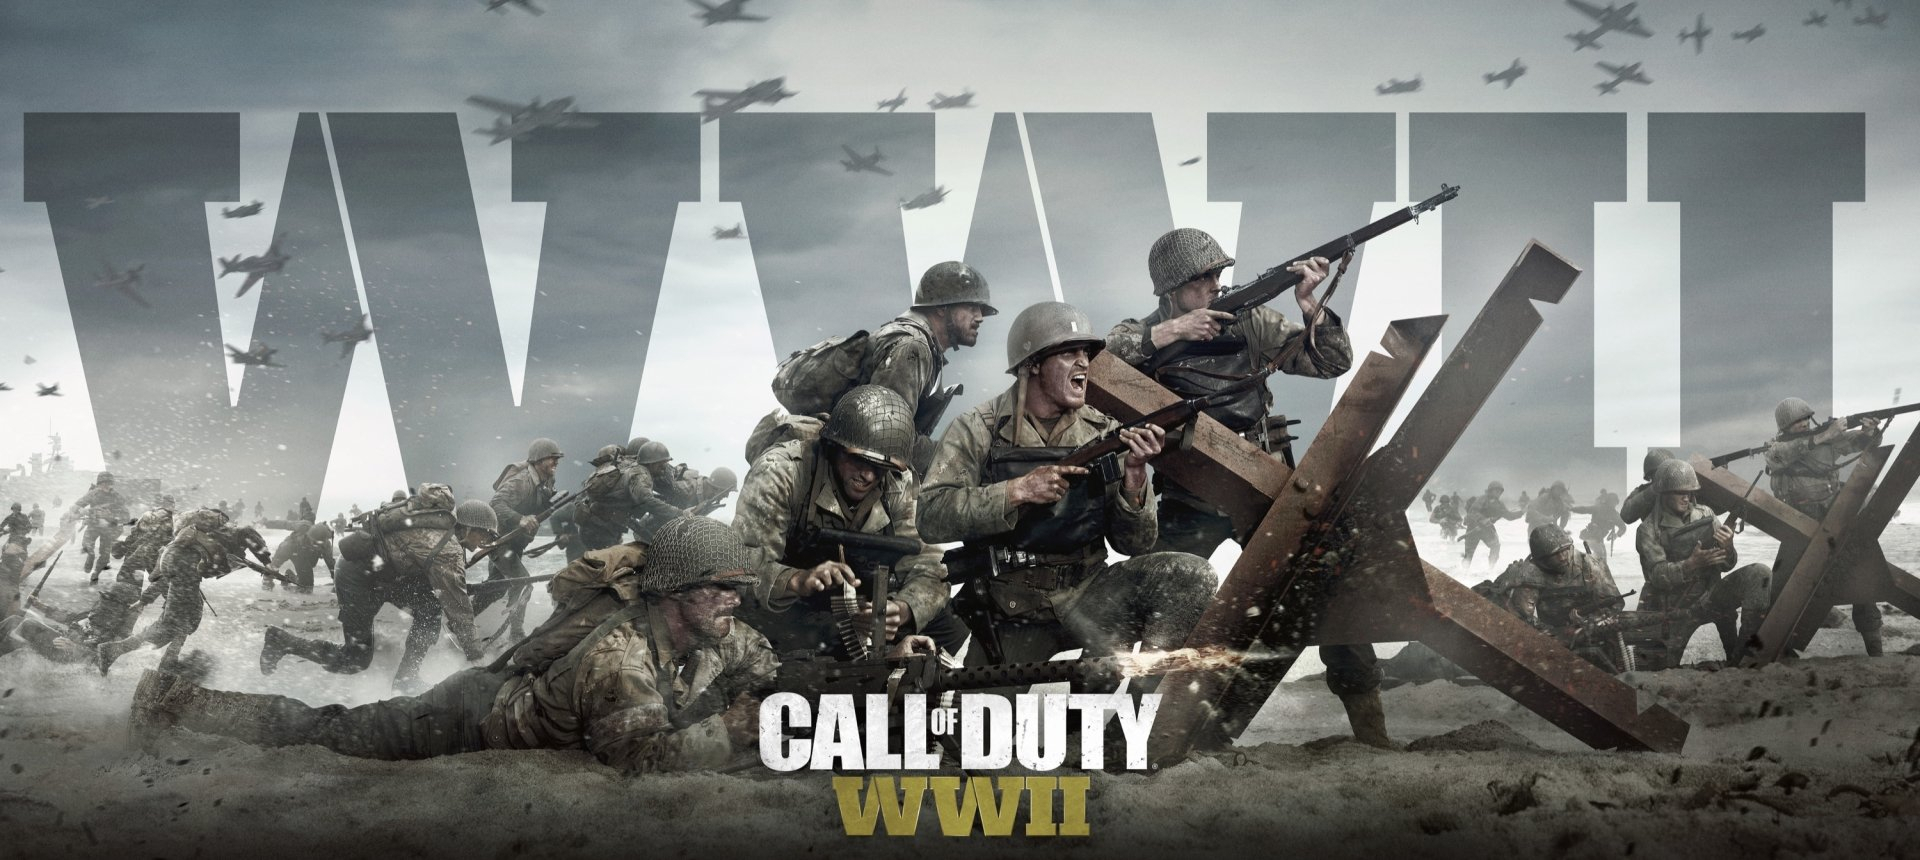 27 call of duty: wwii hd wallpapers | background images - wallpaper